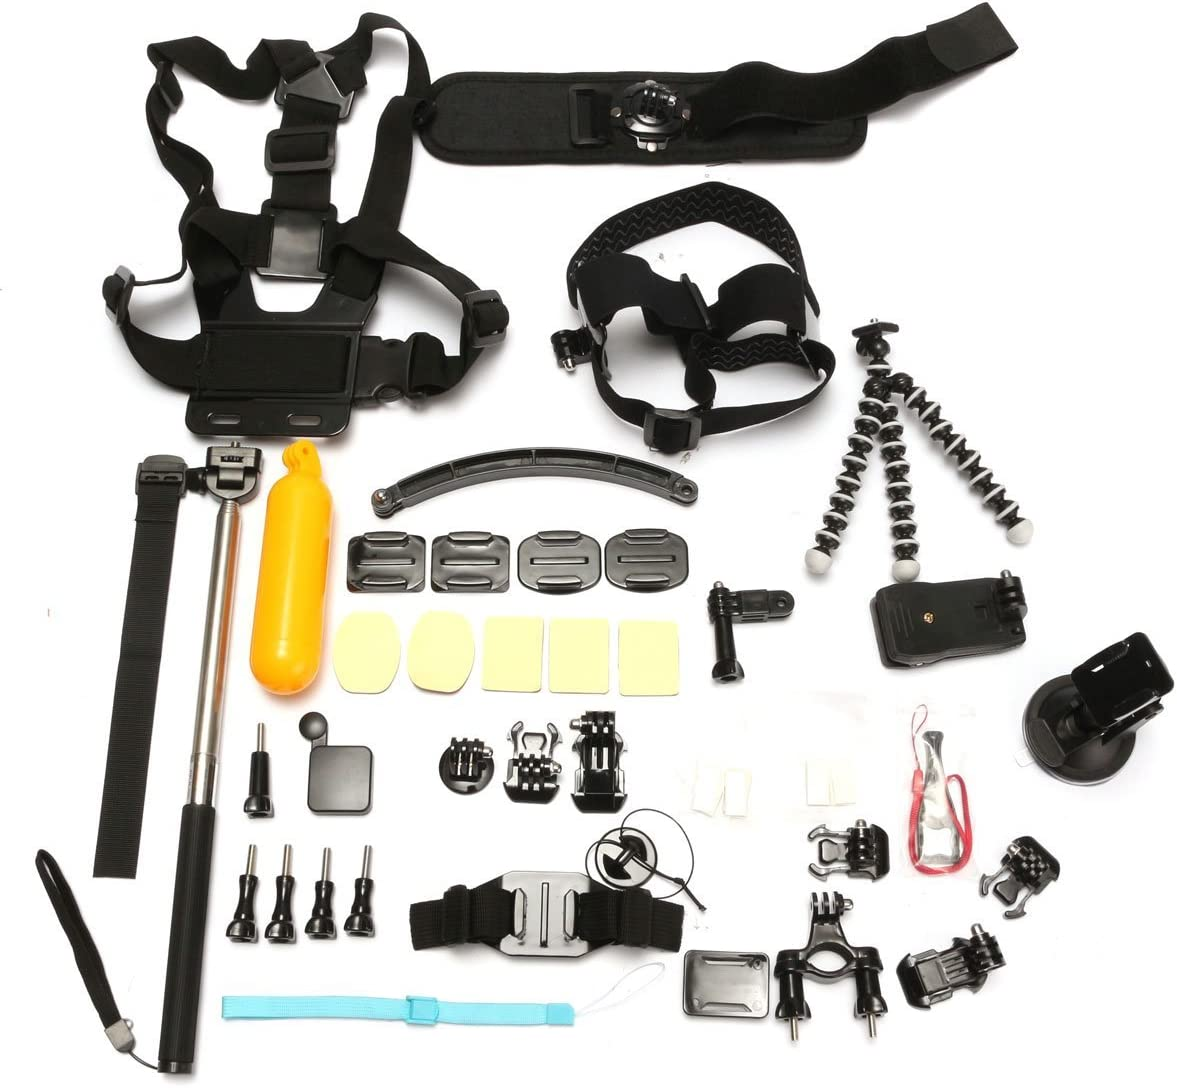 37 in 1 Wrist Chest Strap Monopod Mount Accessories Set Kit For Gopro 2 3 3 Plus 4 Xiaomi Yi SJcam